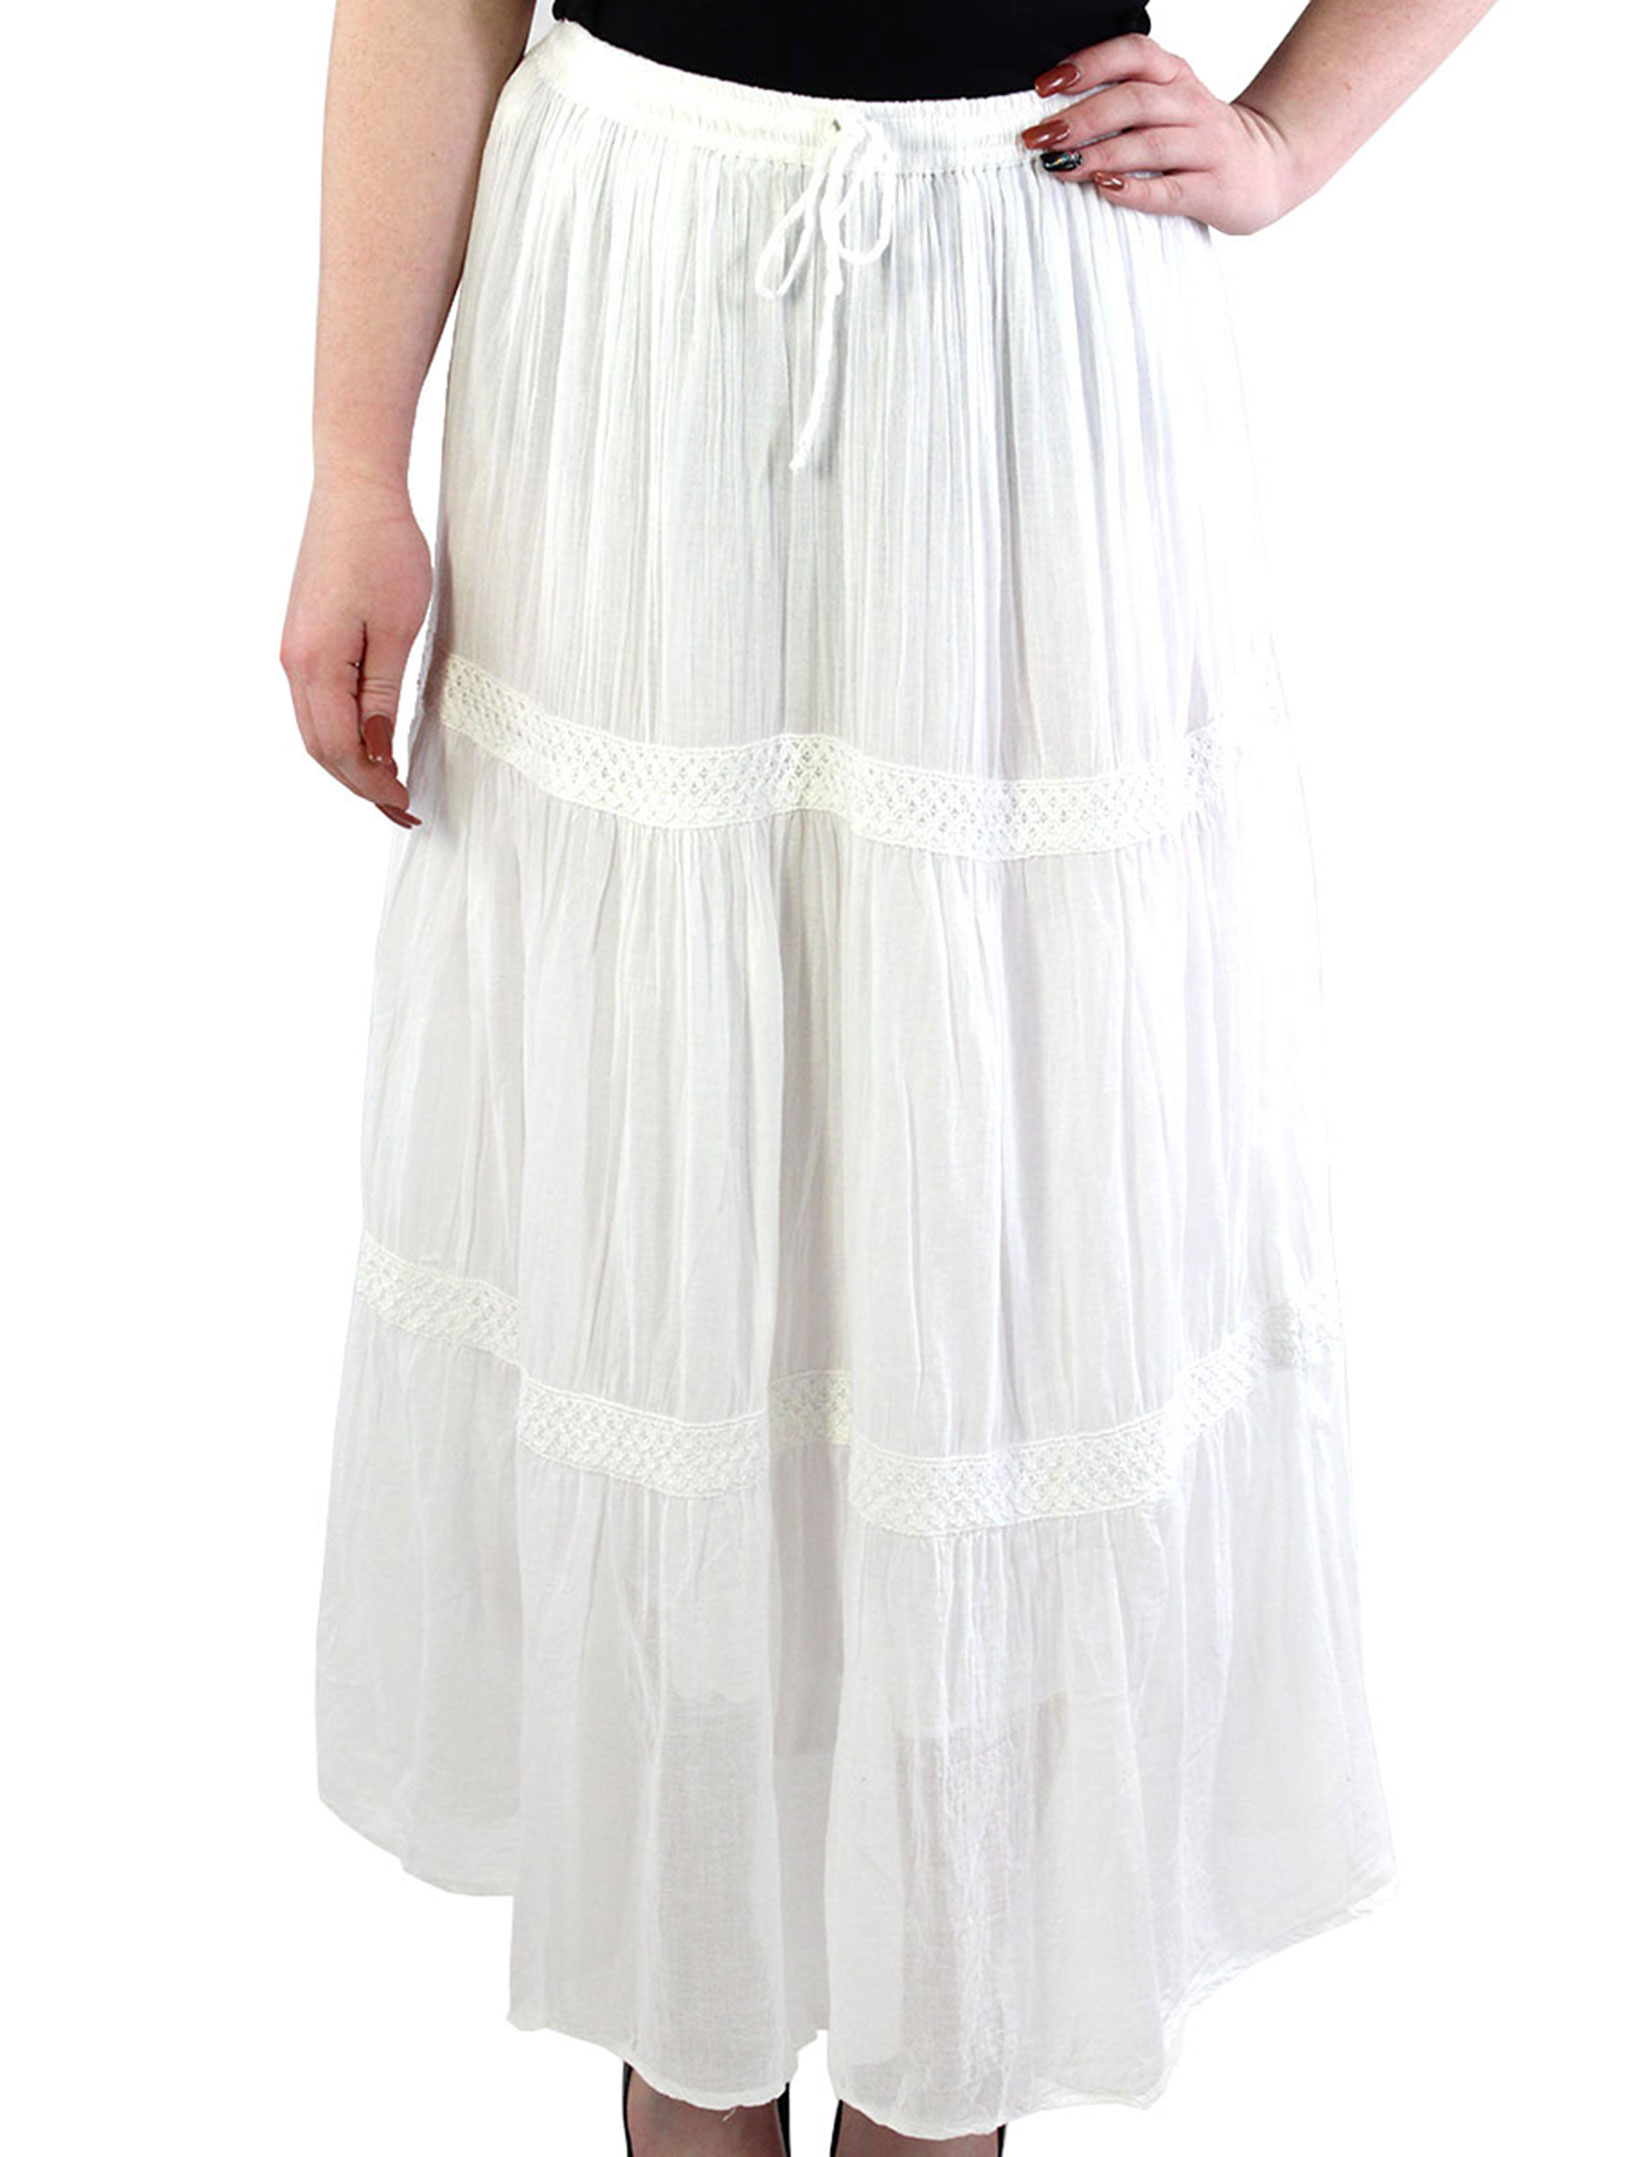 wholesale Classic White Skirt - Tiered 11590